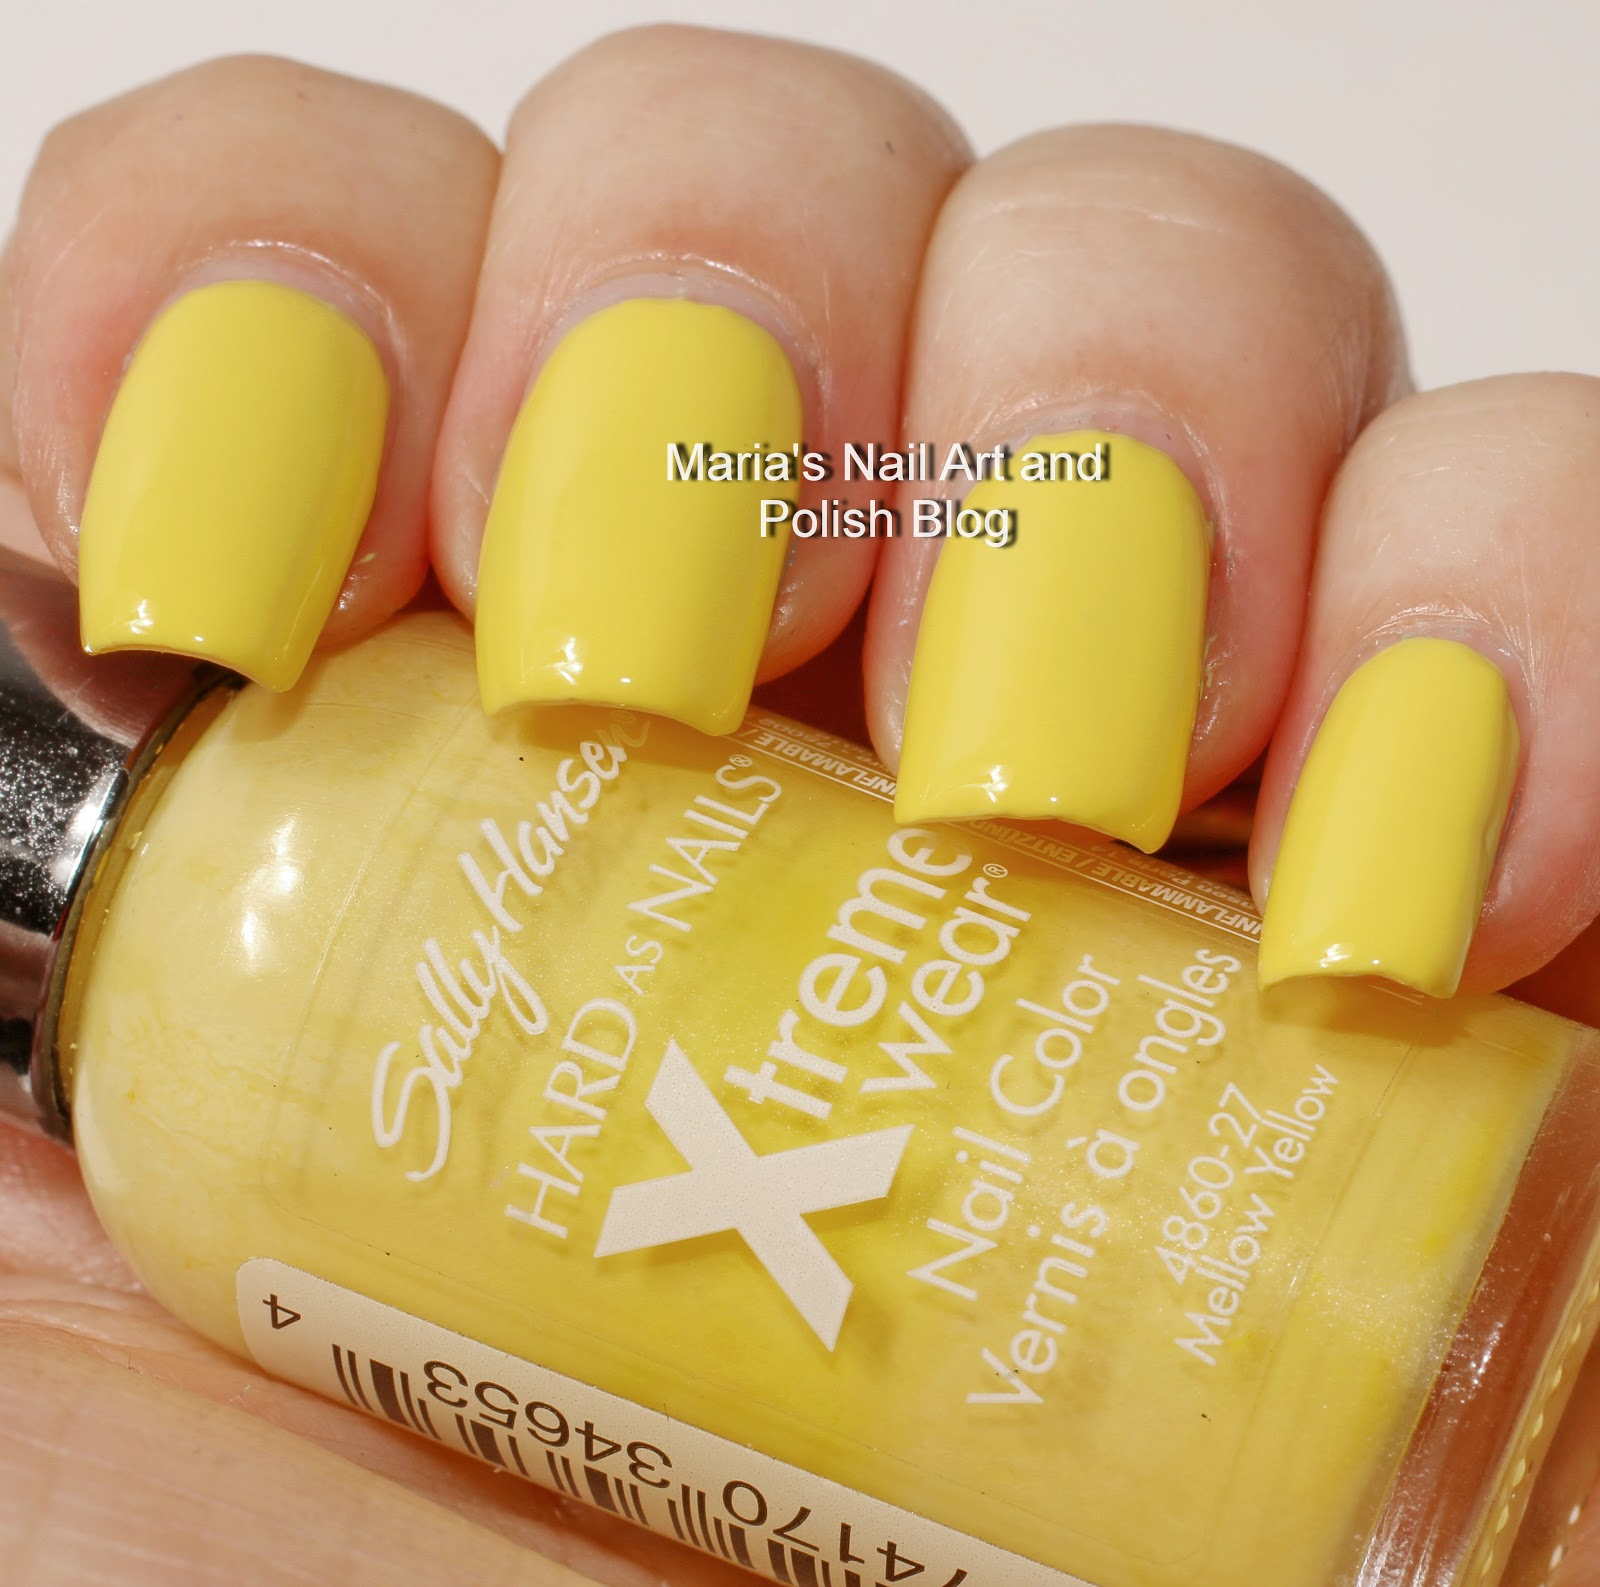 Marias Nail Art And Polish Blog: Swatch Spam: Perfect